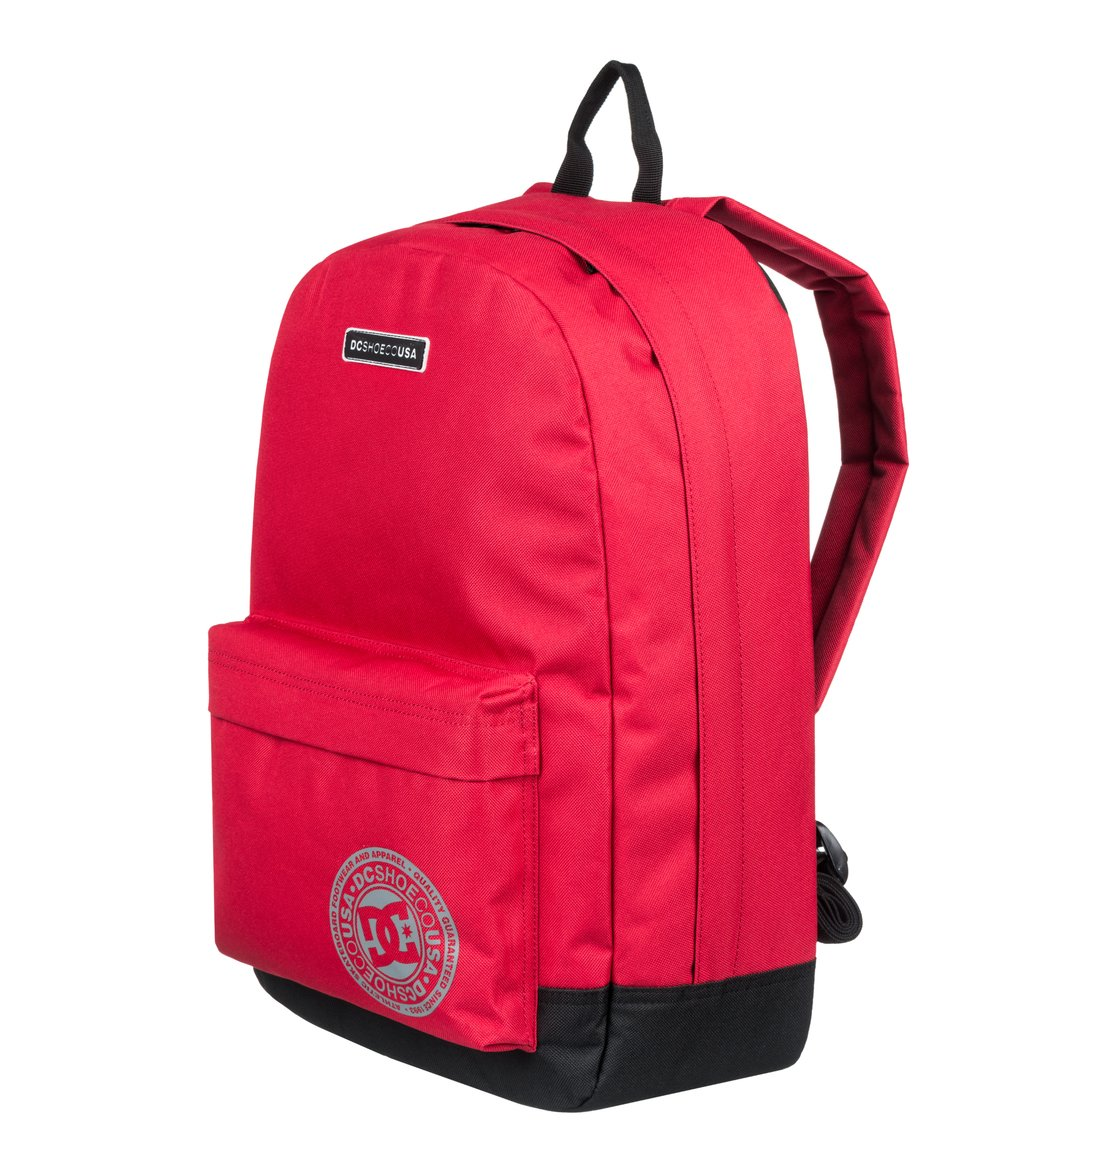 DC-Shoes-Backstack-18-5L-Sac-a-dos-taille-moyenne-pour-Homme-EDYBP03180 miniature 21